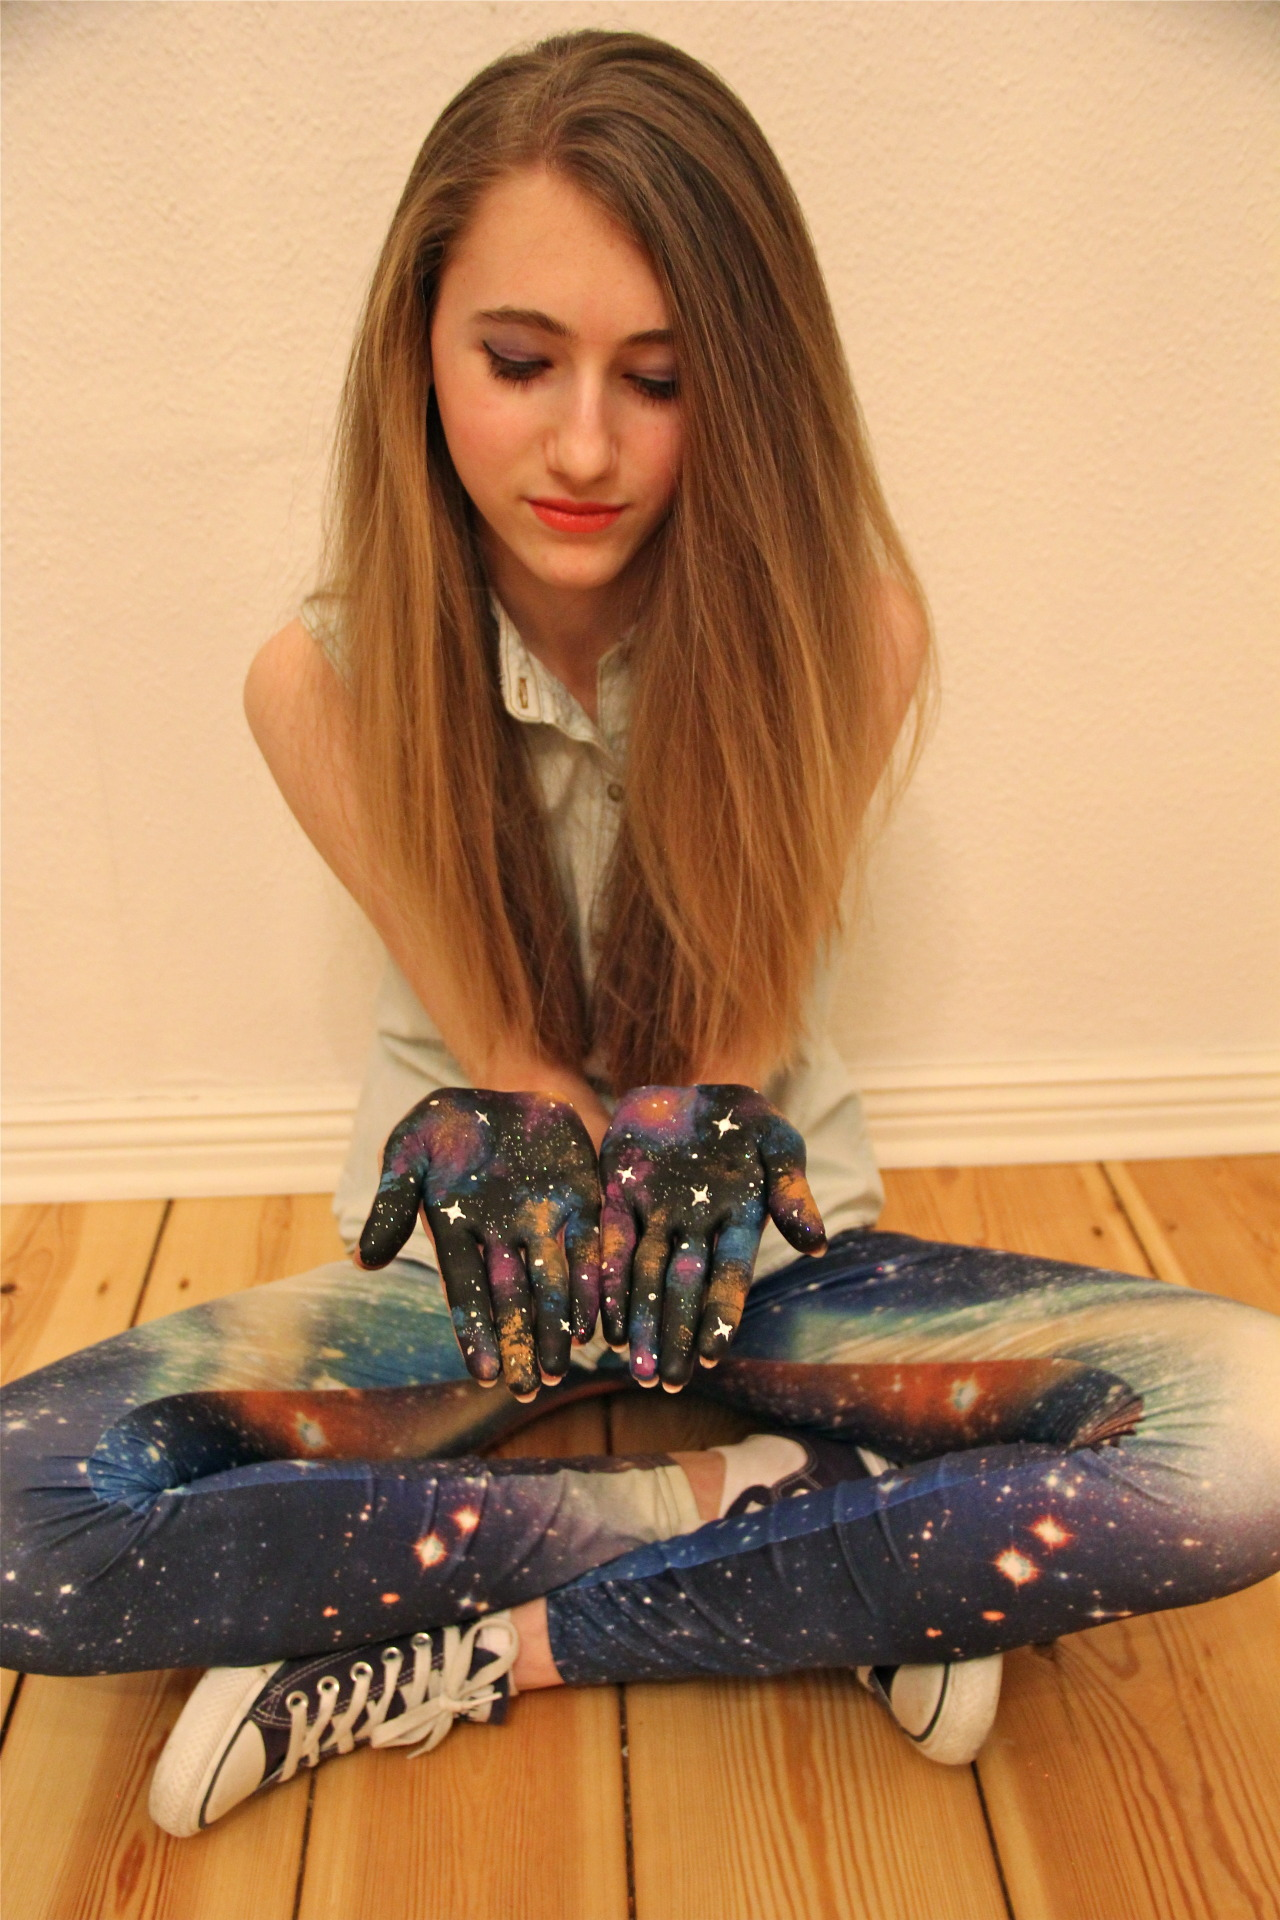 the universe is in our hands my best friend is so beautiful, love her <3